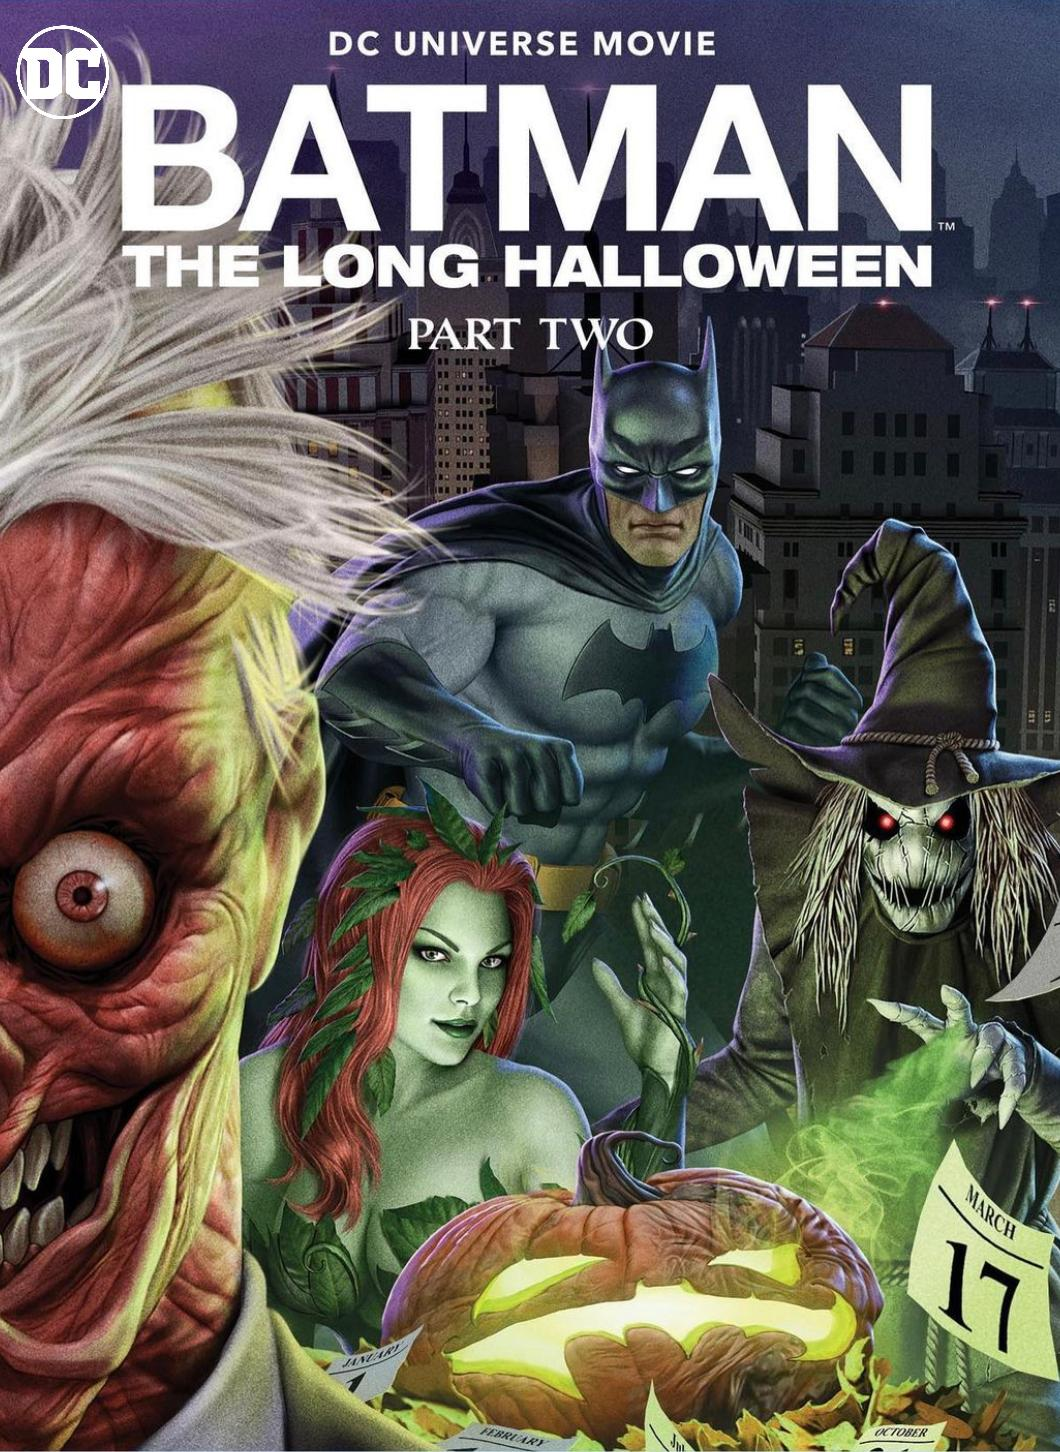 Batman: The Long Halloween, Part Two poster image